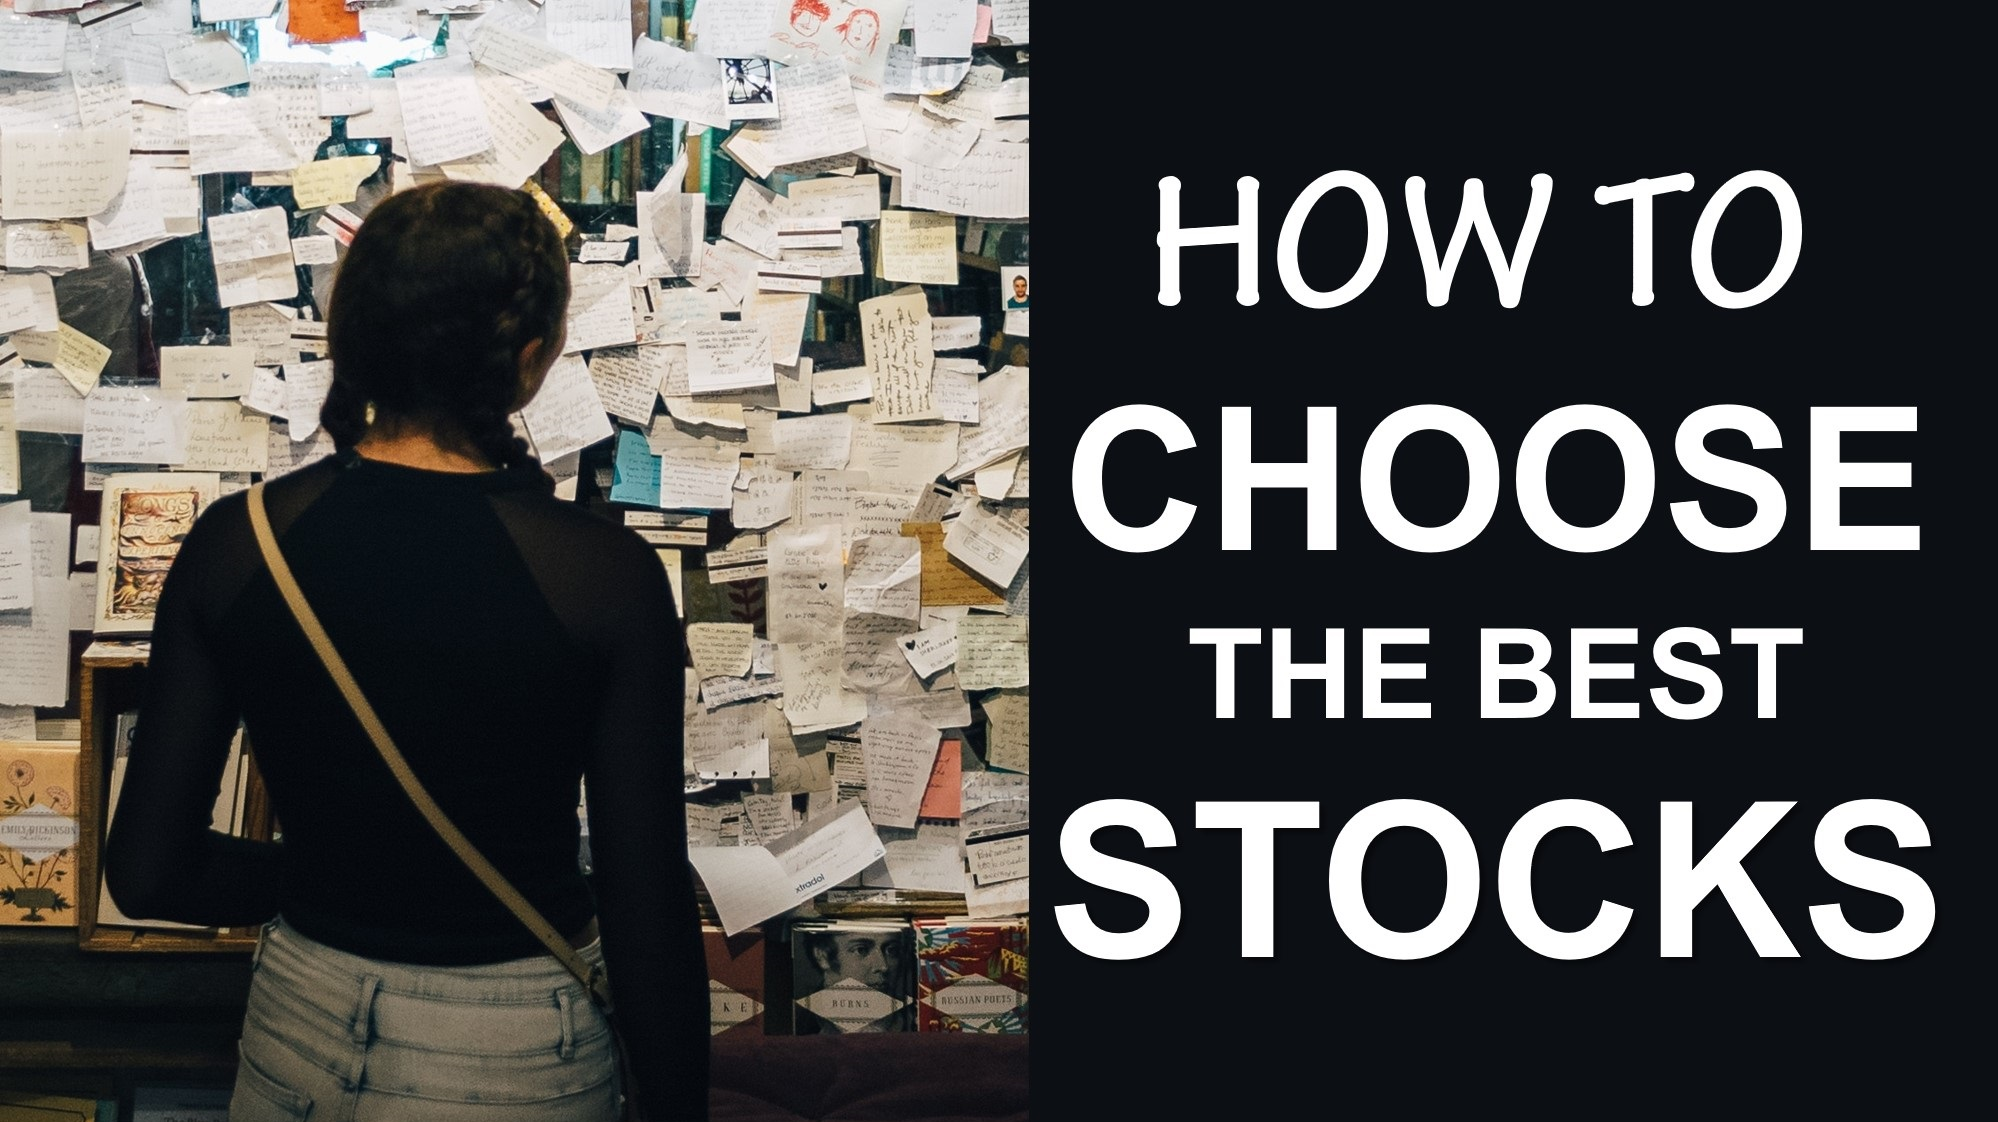 How to choose the best stocks - MoneySmarts